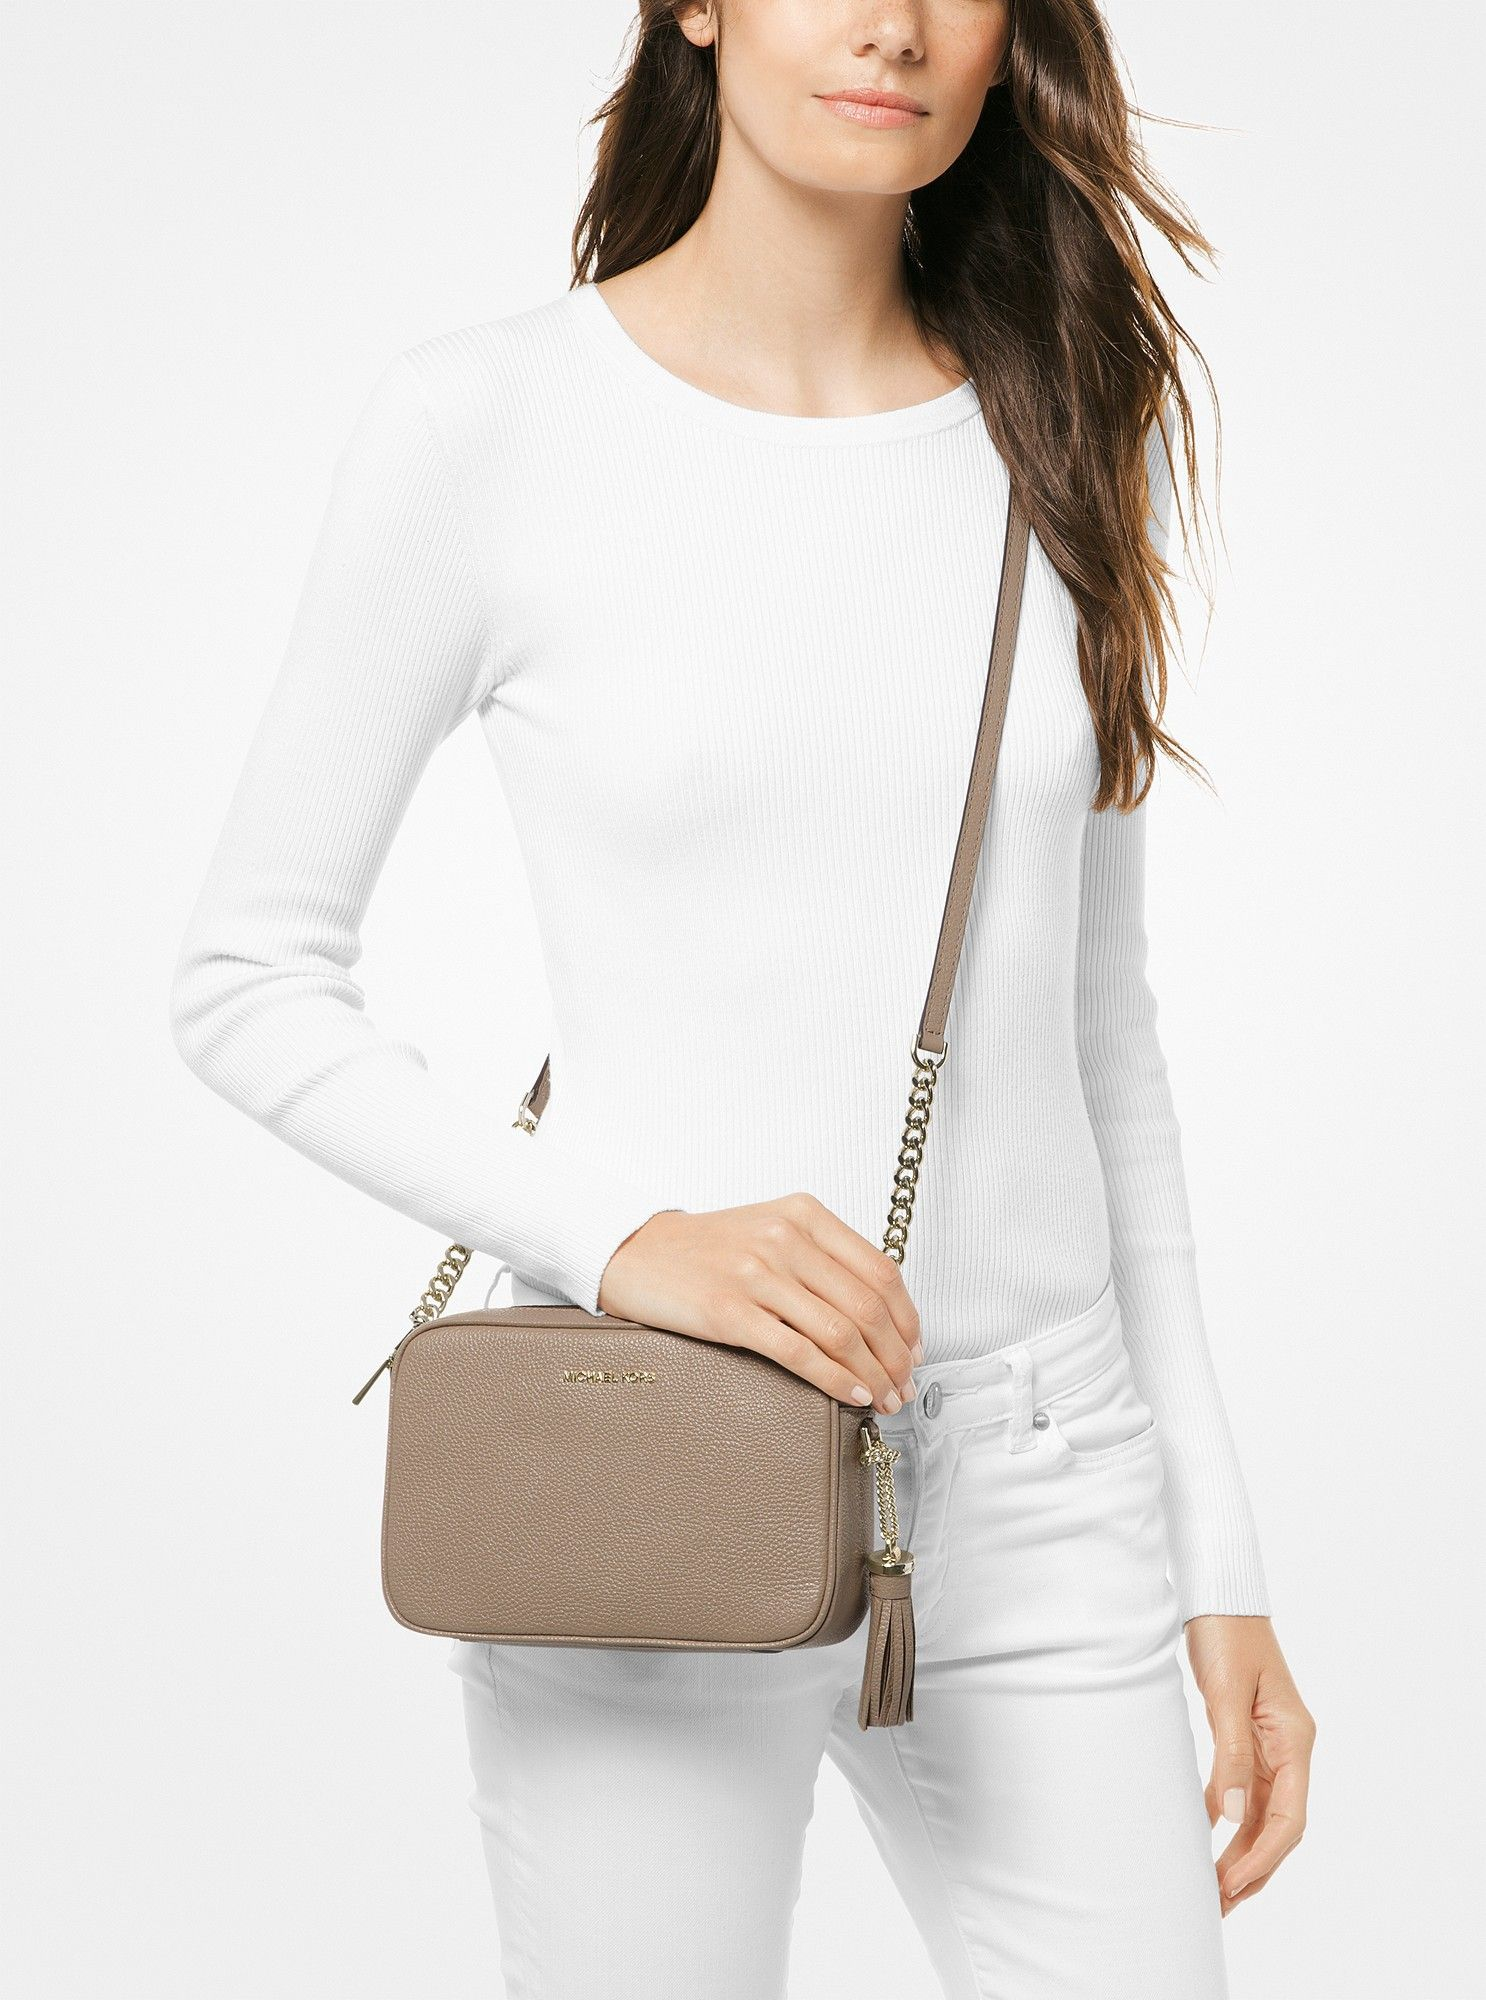 1860172a1e Michael Kors Ginny Medium Pebbled Leather Crossbody - Truffle